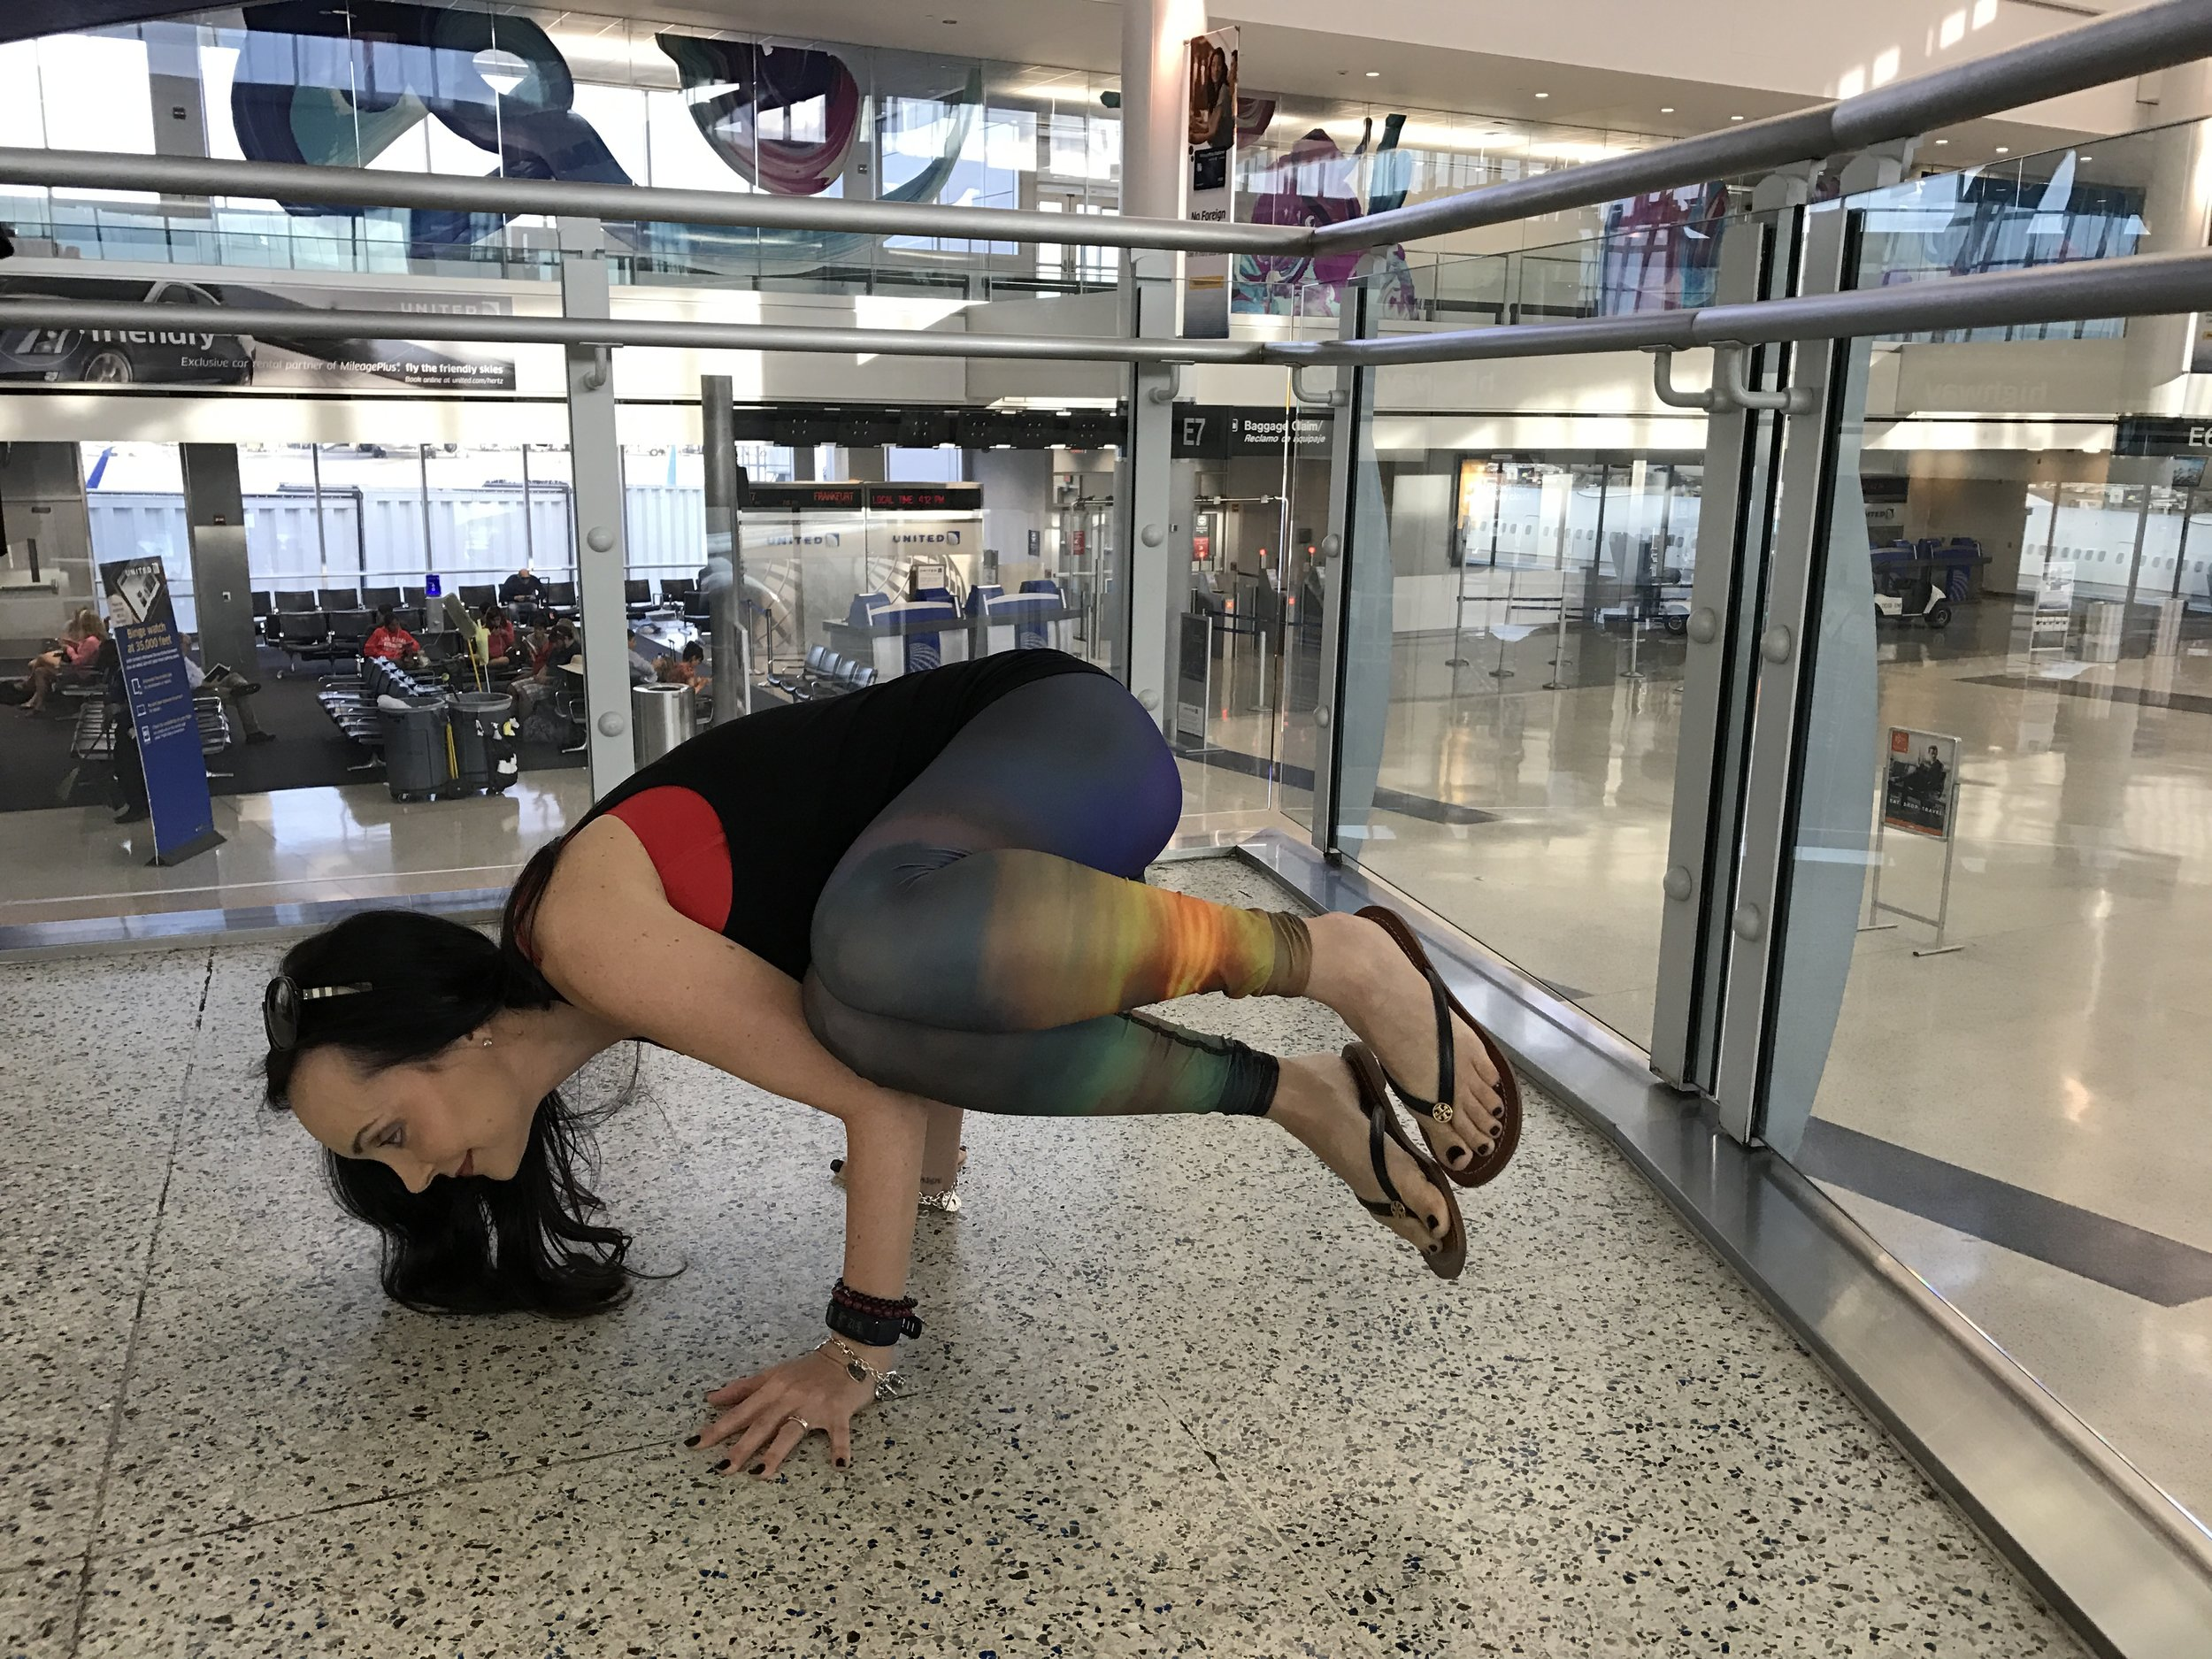 I didn't get a photo doing yoga in Nashville but I did in the Houston airport...Playing all day, everyday.